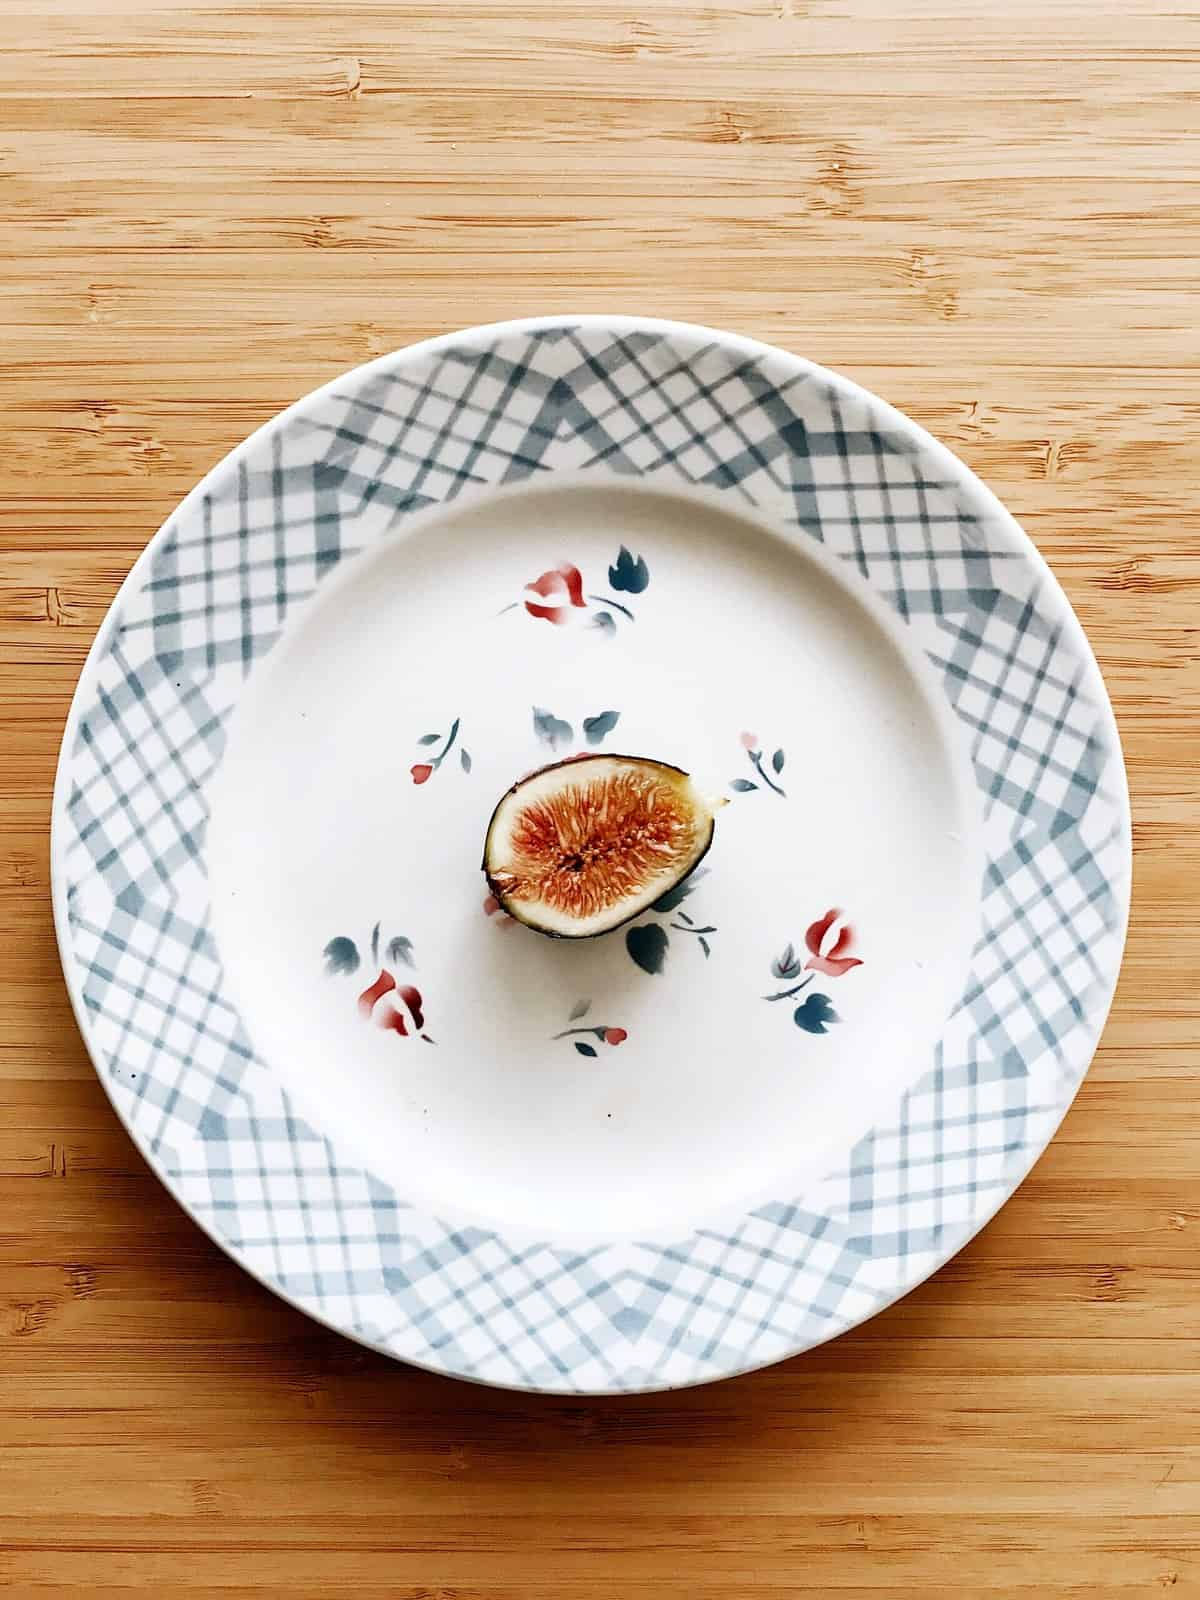 A single fig on a plate to demonstrate how restrictive intuitive fasting is.